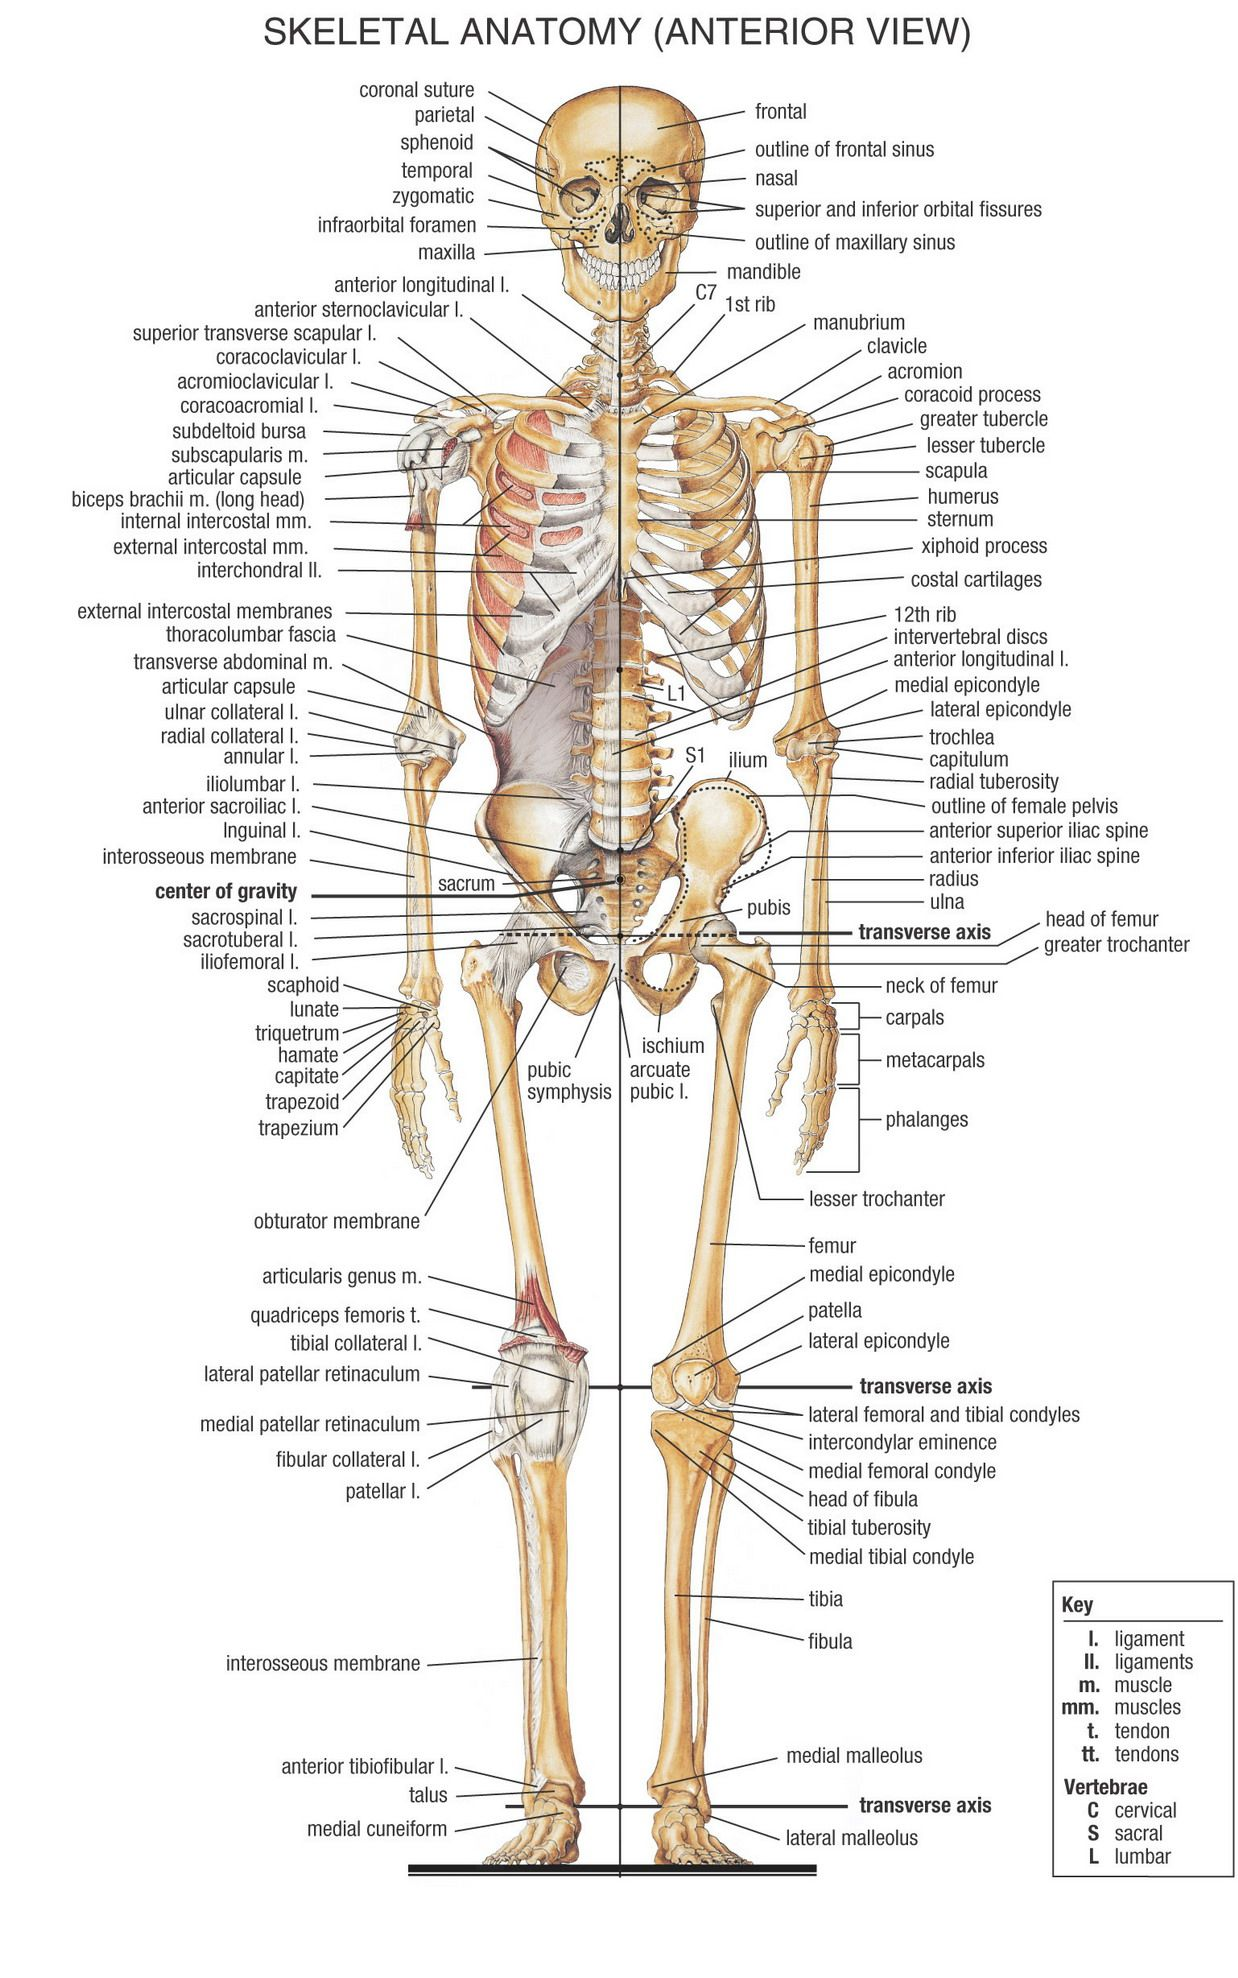 Skeletal Anatomy The skeletal system in an adult body is made up